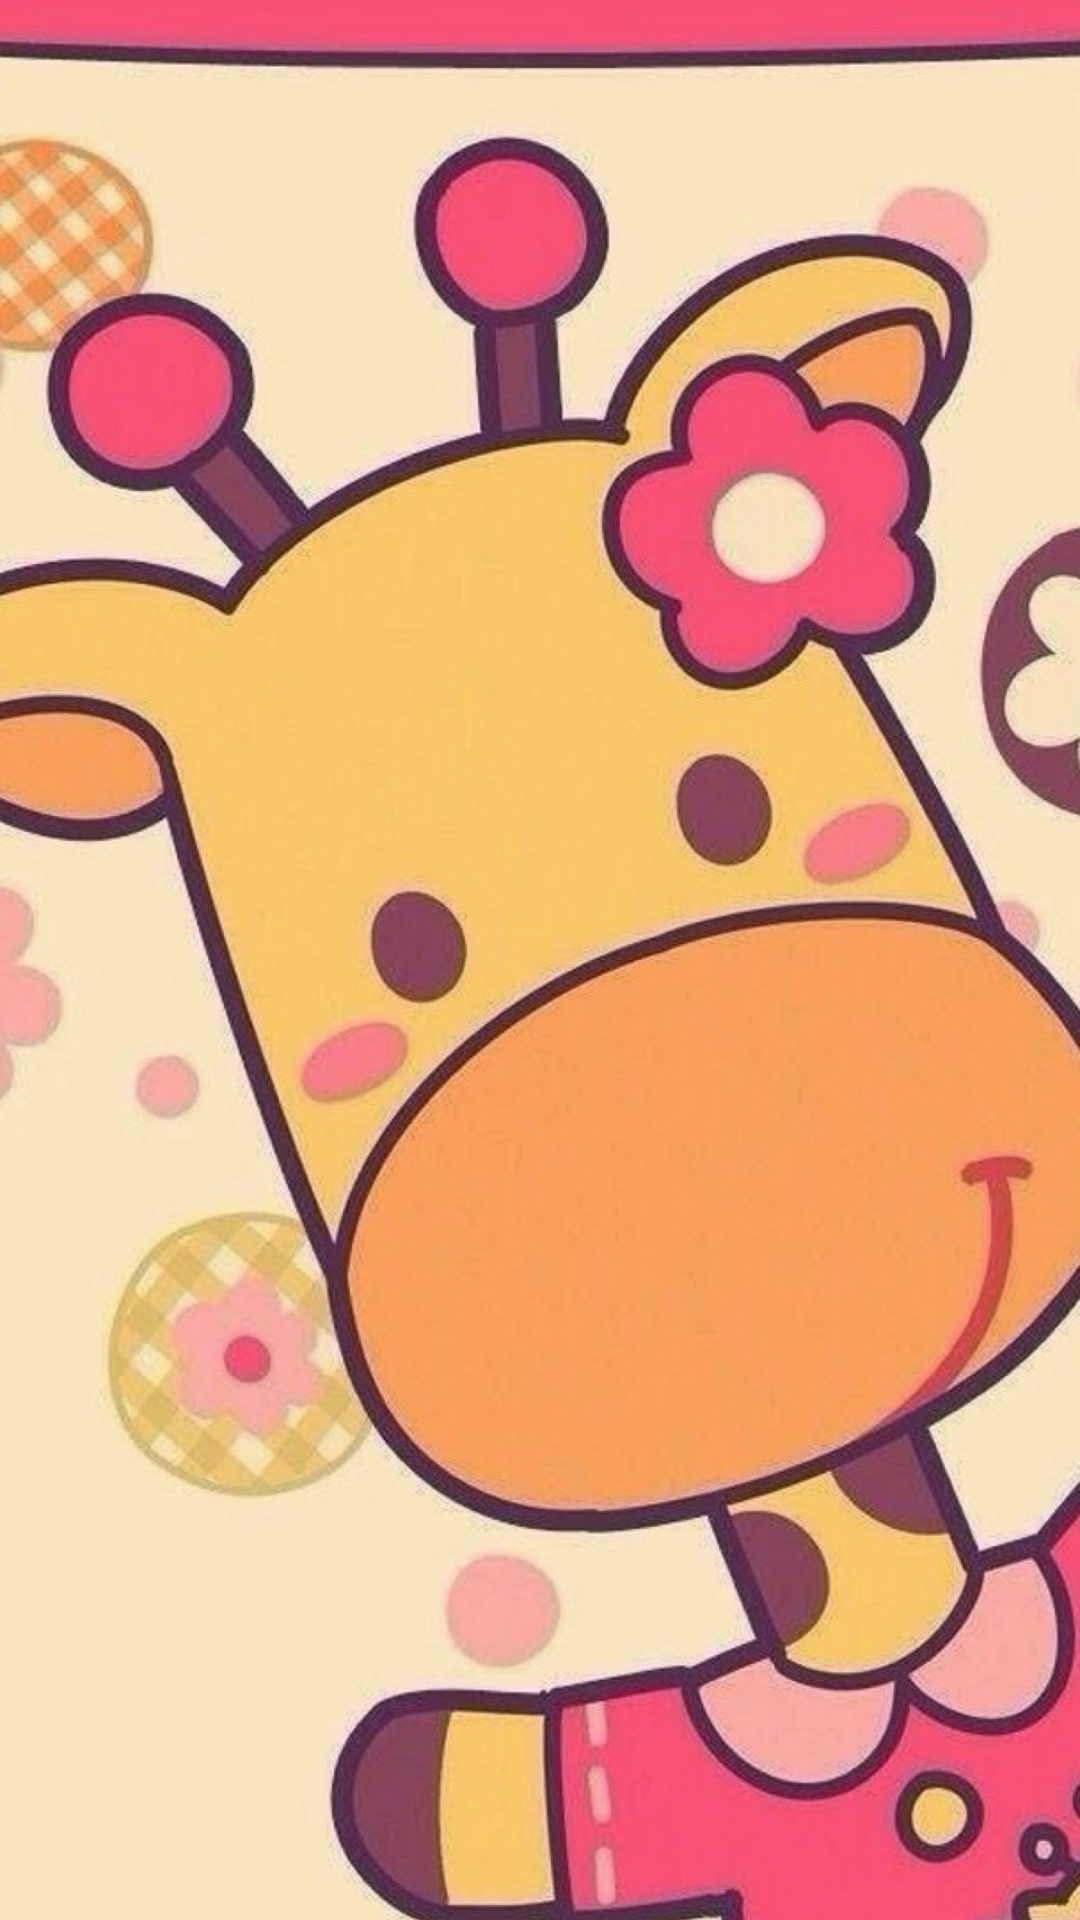 Cute Cartoon Giraffe Iphone 6 6 Plus And Iphone 5 4 Wallpapers